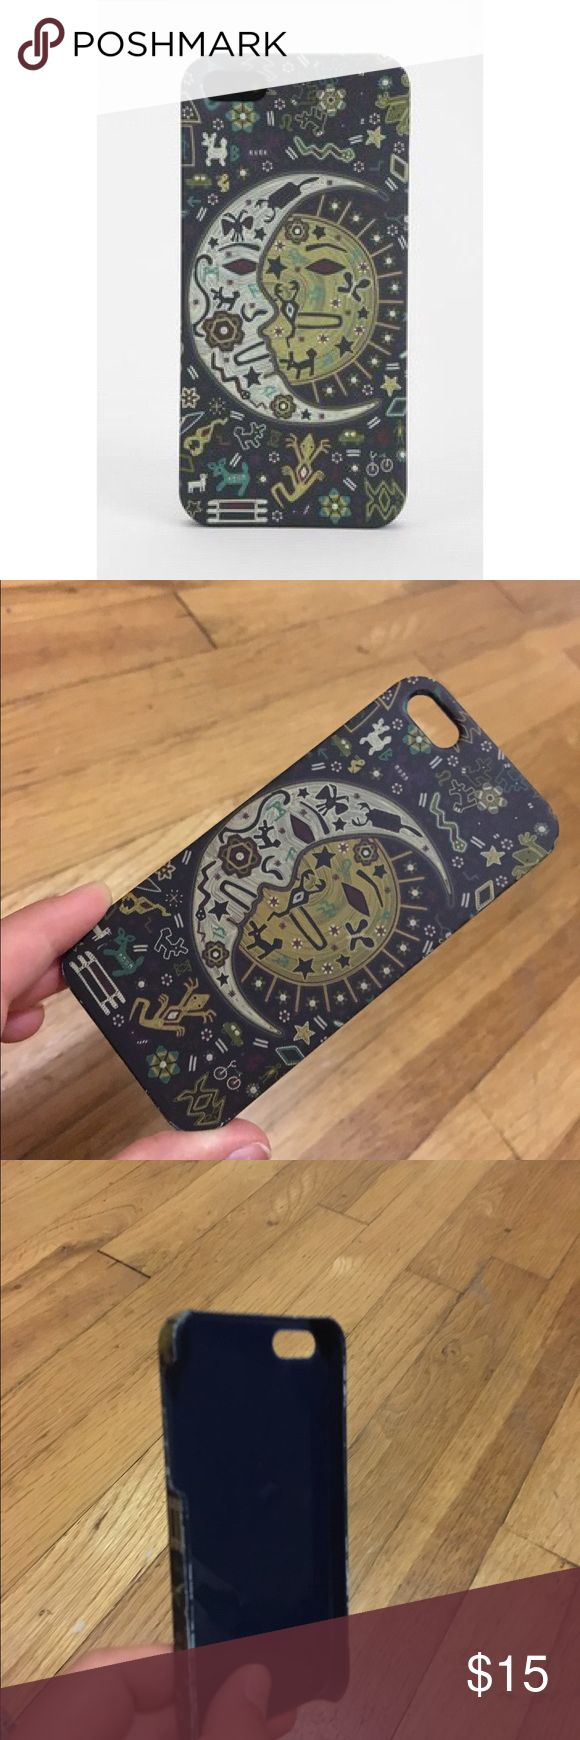 URBAN OUTFITTERS sun & moon iPhone 5/s case!  This phone case is from Urban Outfitters, it has some beautiful art work of a sun and moon on it! The case is lightly used, and fits a 5/5s iPhone. It's SO cute and stylish right now, I wish I could keep it but I have a 6s :( The back is a very soft matte finish and it is great! Urban Outfitters Accessories Phone Cases